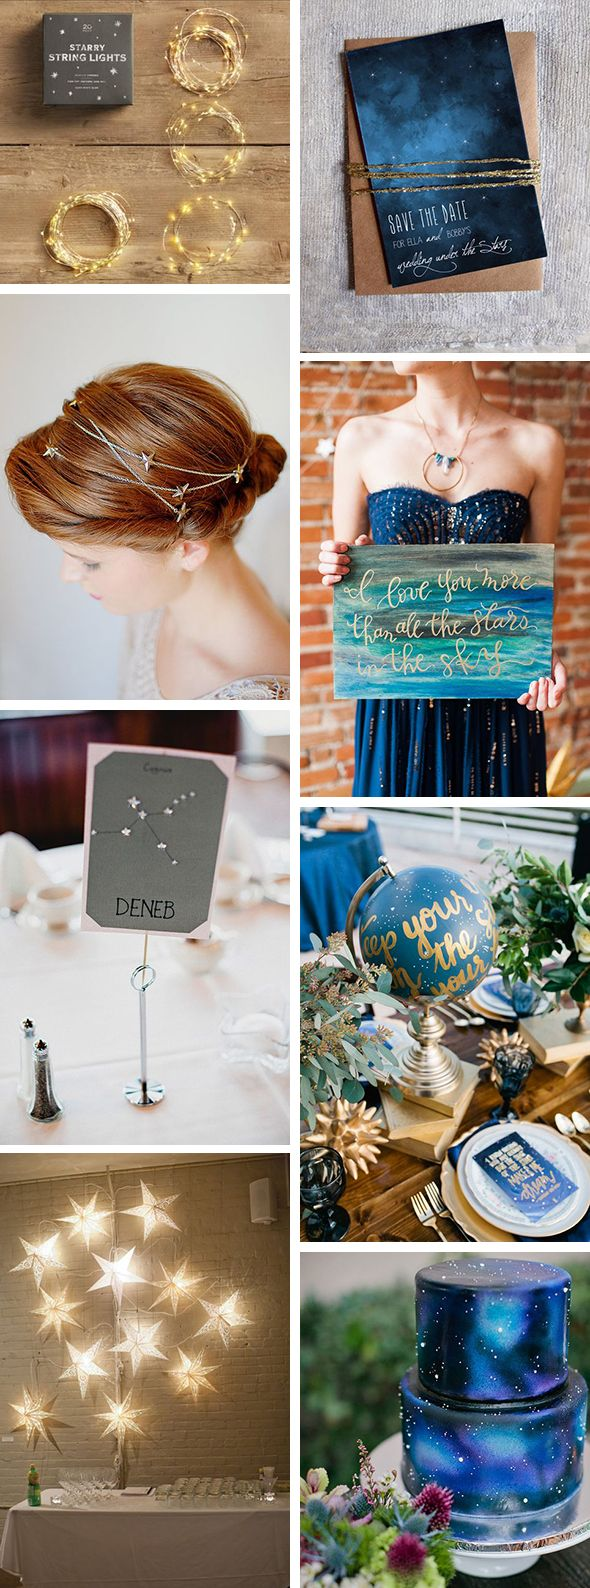 If you're getting married under the stars, you might want to consider bringing the sparkle down from the sky to the tables, invitations, even the wedding cake! Take a look at a few fun ideas to weave those stars in your eyes into your event design